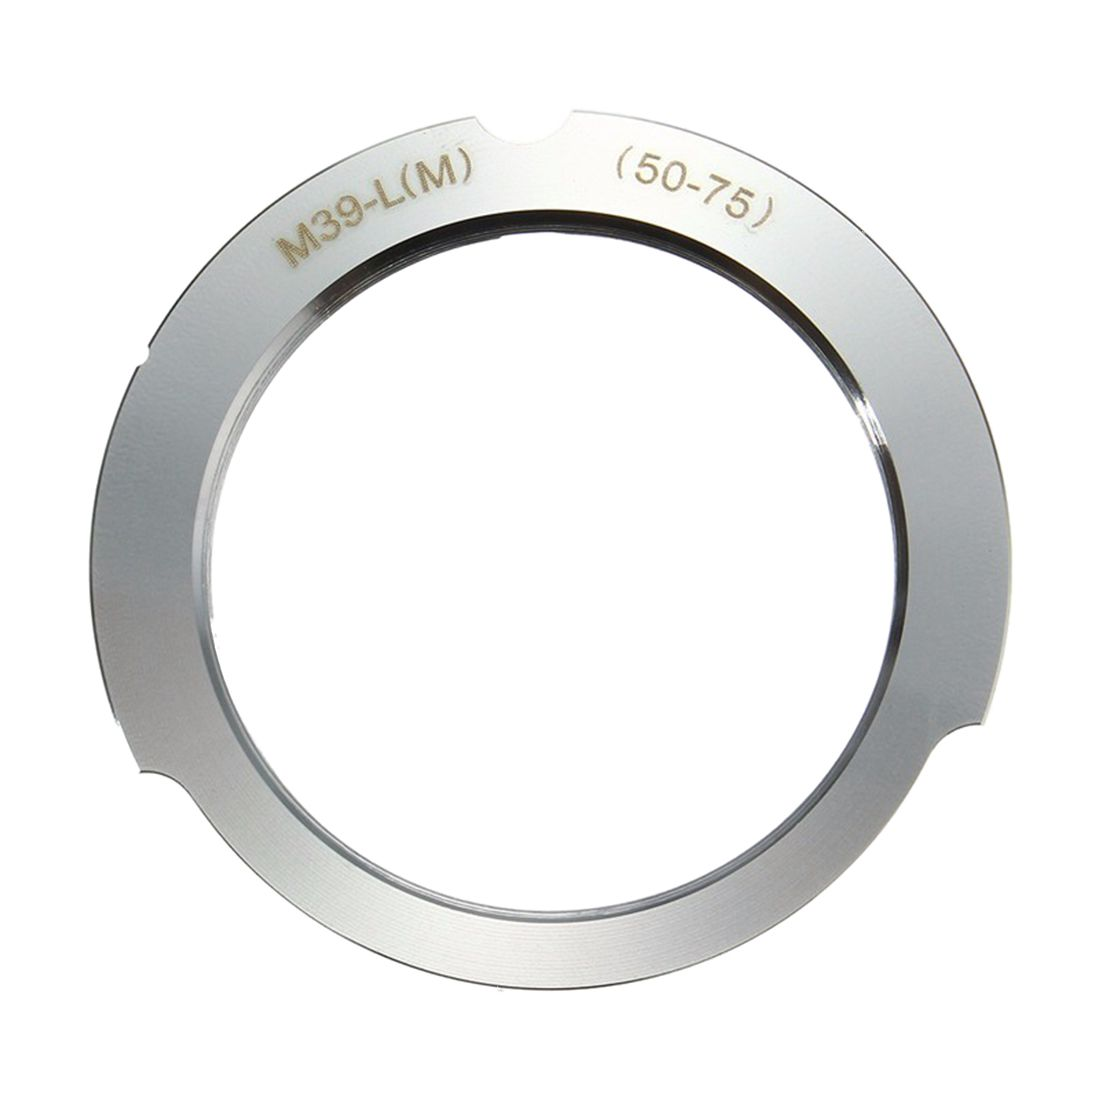 Camera Lens Mount Adapter 50-75mm For Leica Thread Screw Mount M39-L(M) LSM LTM